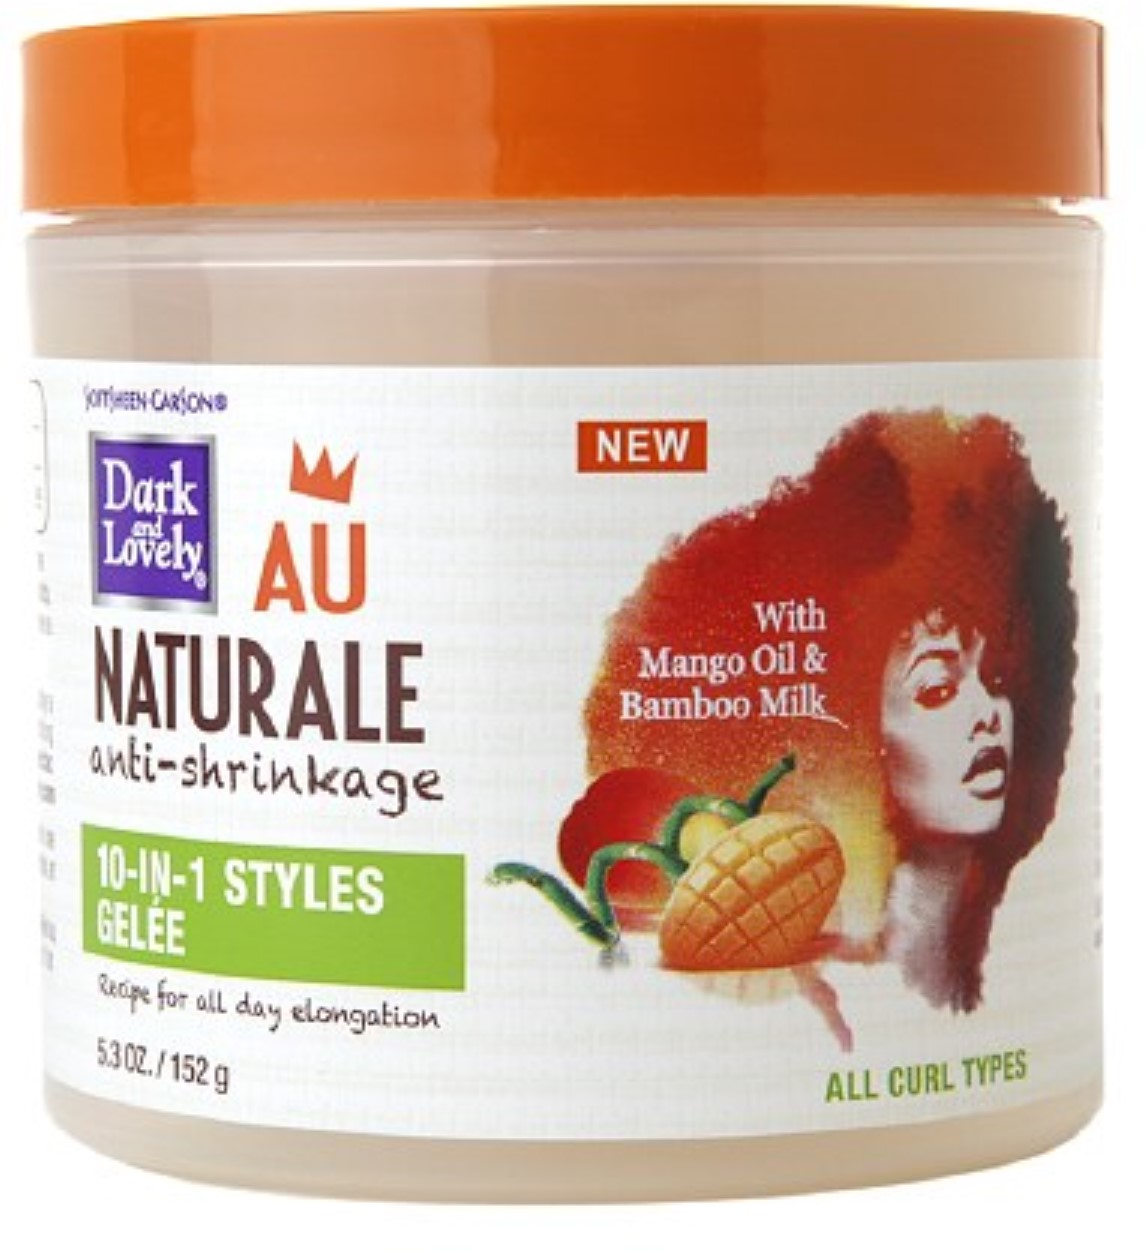 Dark and Lovely Au Naturale 10-In-1 Styles Gelee 5.3 oz